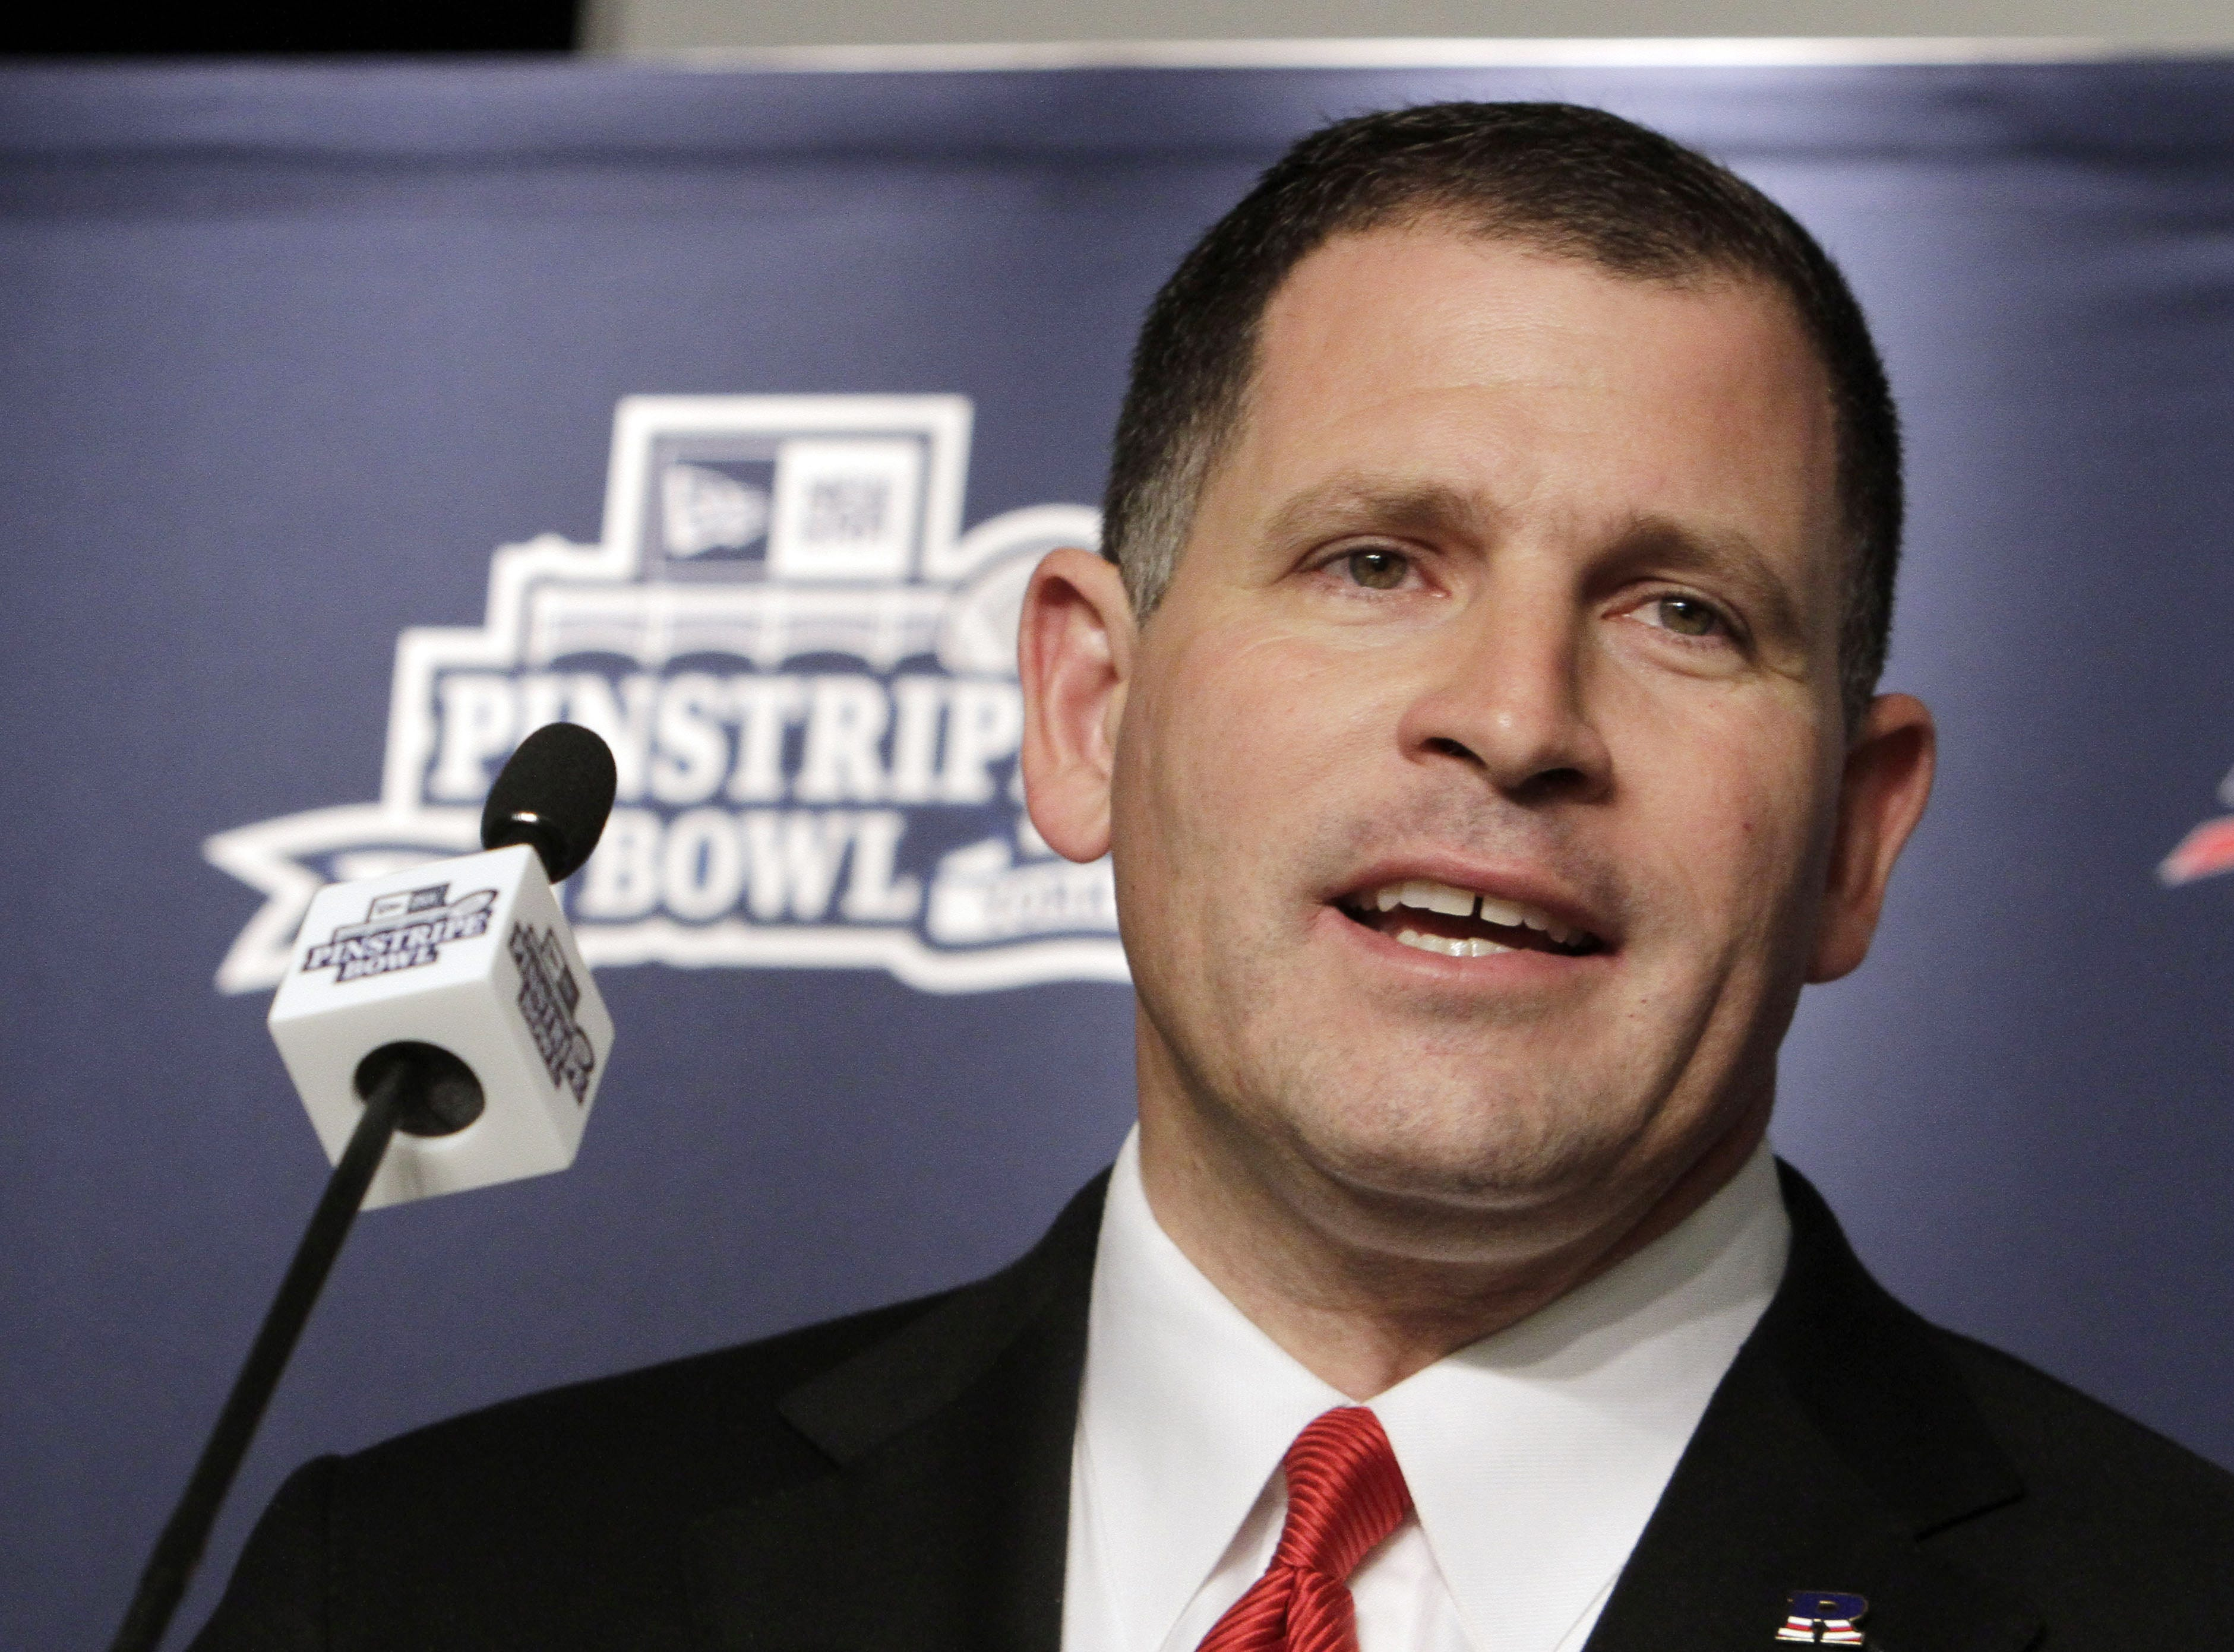 Rutgers coach Greg Schiano addresses the media  during an NCAA college football news conference at New York's Yankee Stadium,  Wednesday, Dec. 7, 2011. Rutgers is scheduled to takes on Iowa State in the New Era Pinstripe Bowl at the stadium on Dec. 30, 2011.